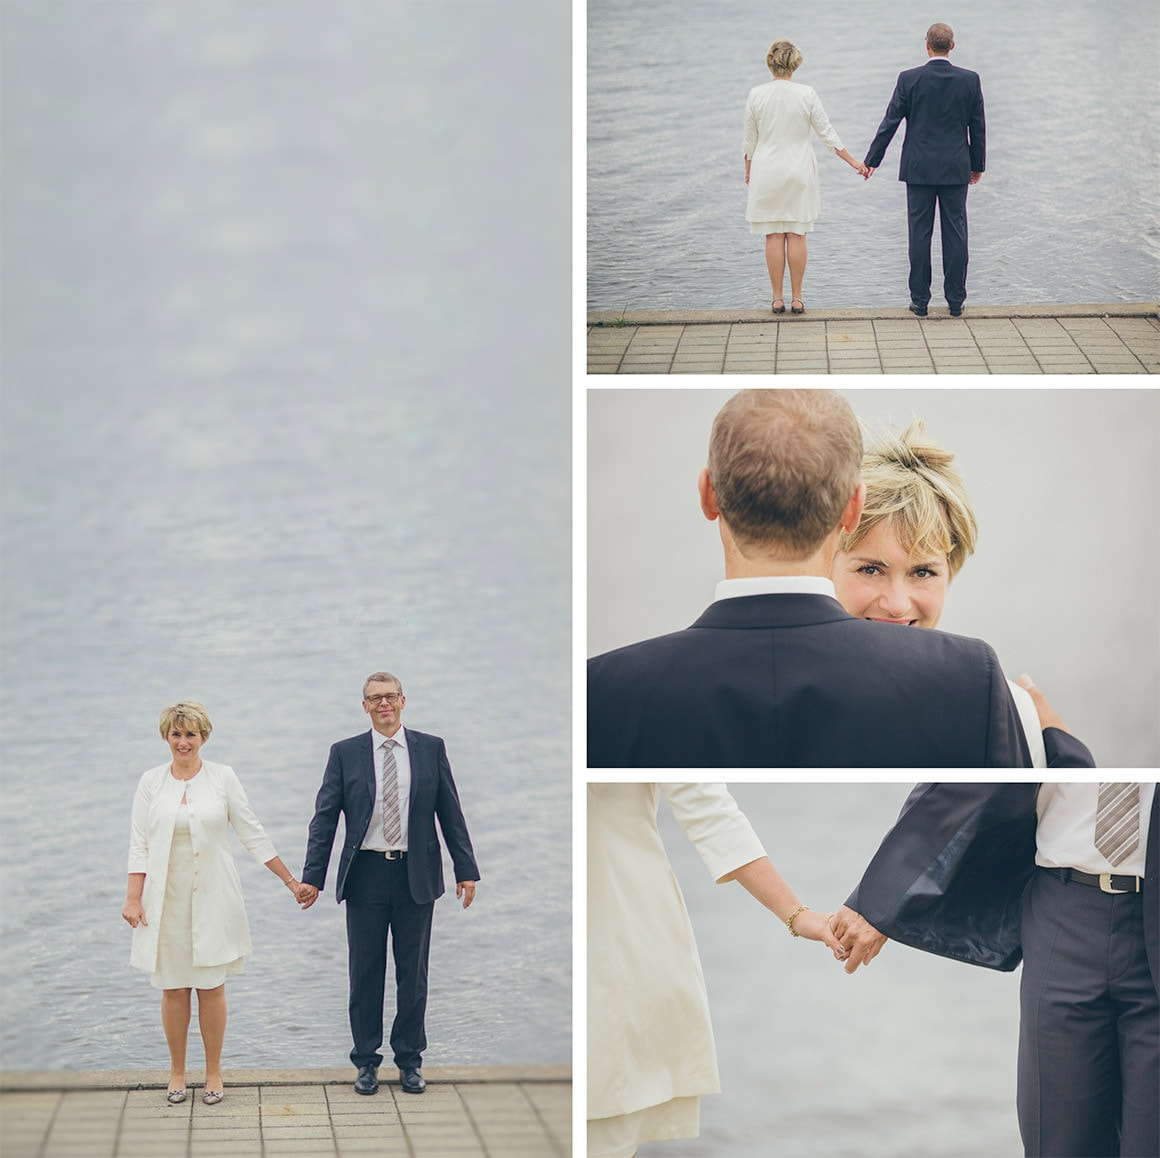 lake wedding photography on a windy and cloudy day